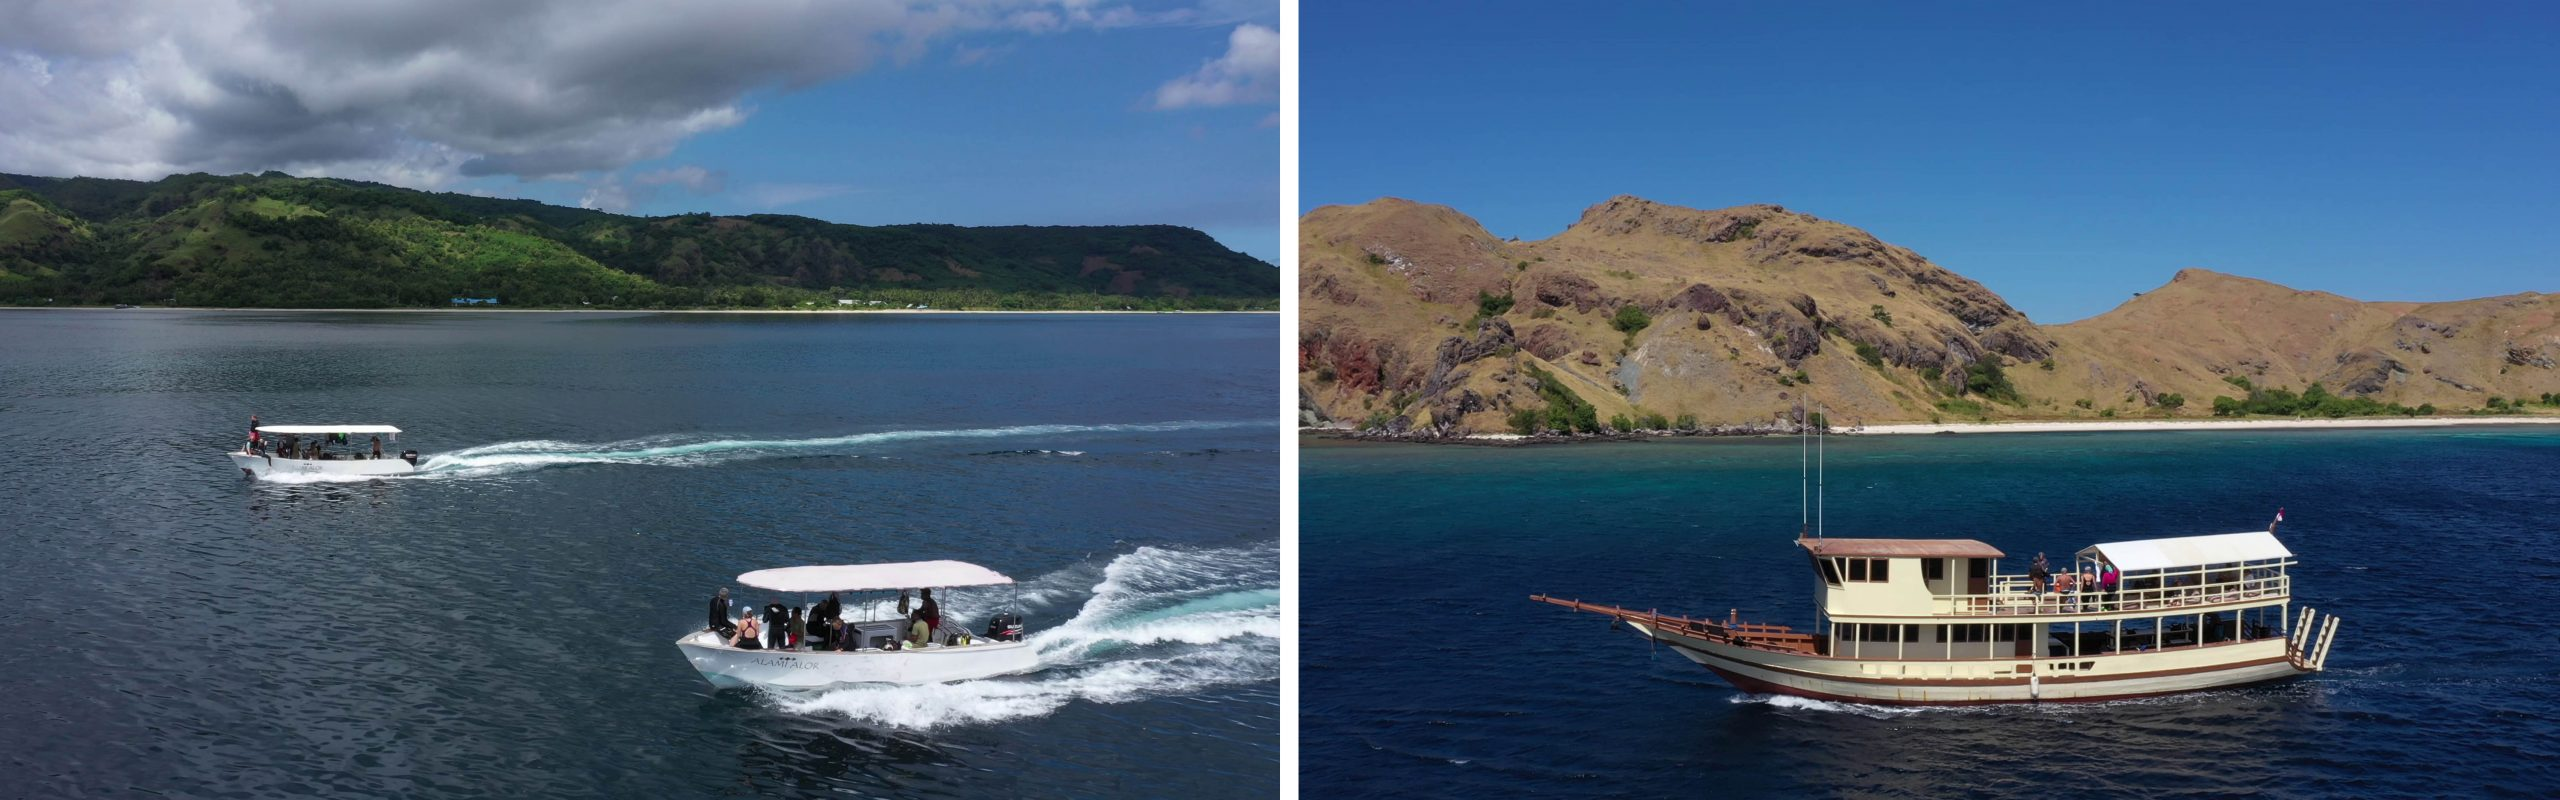 Komodo Resort and Alami Alor's snorkeling boats